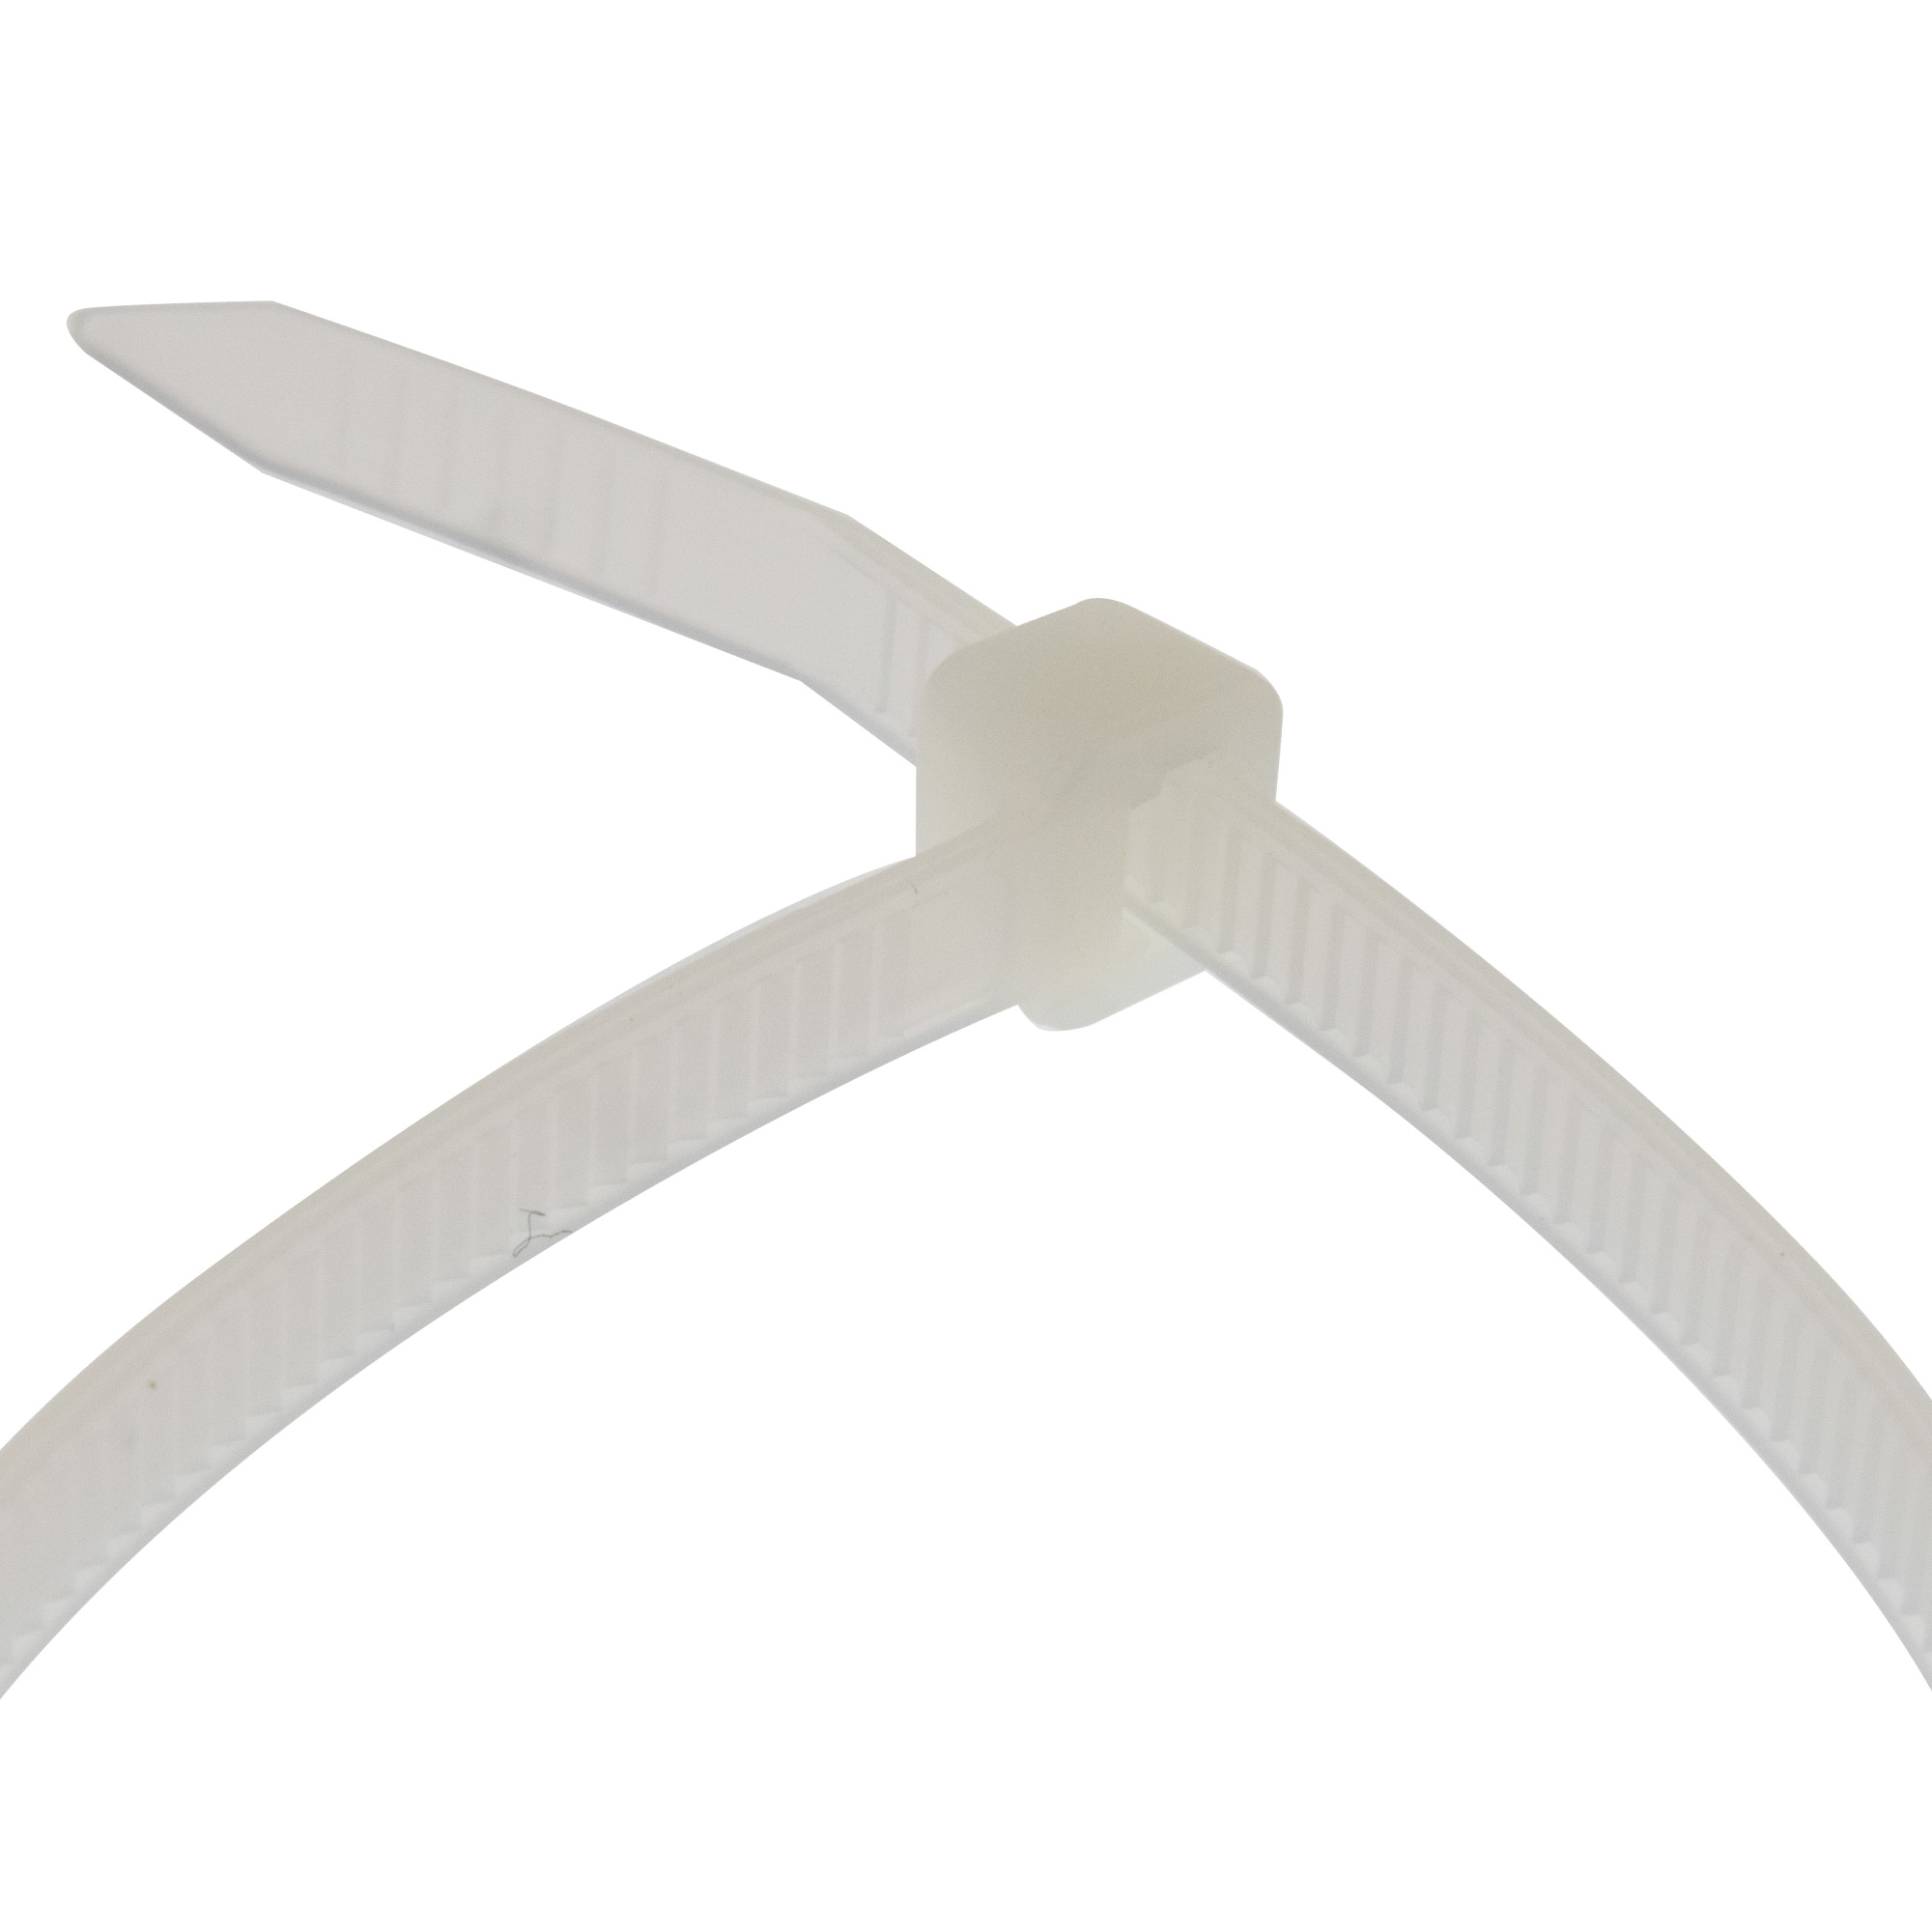 Cable tie self-locking 250 x 2,5mm, white, 100PCS